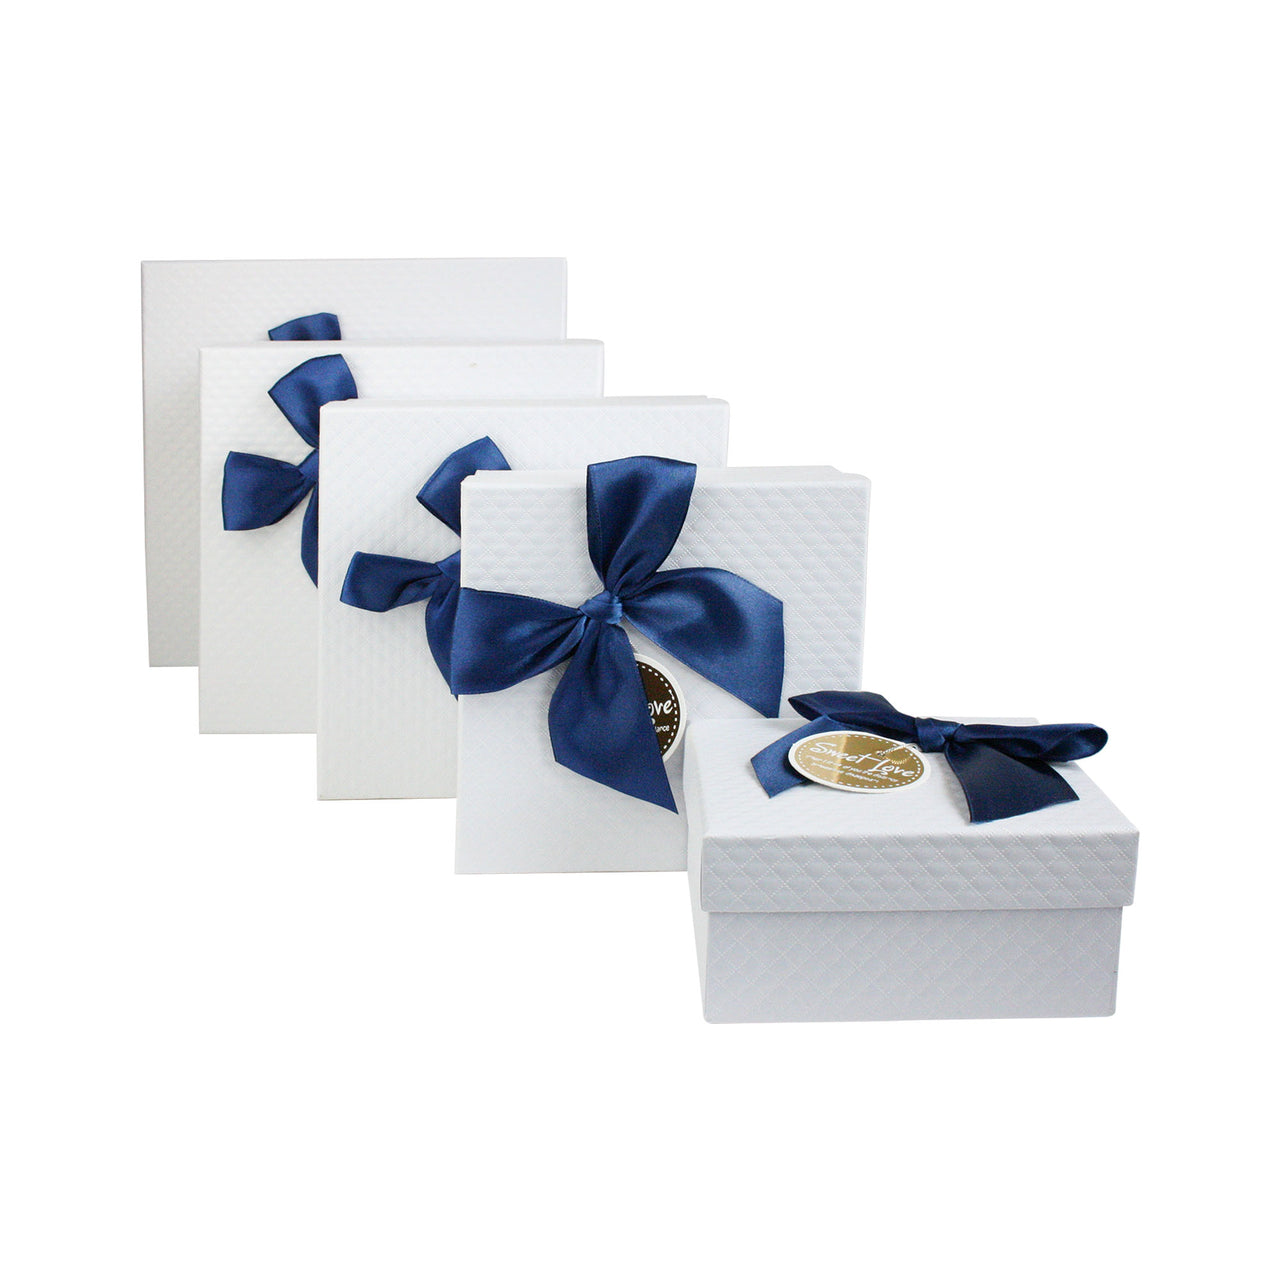 White Blue Bow Gift Box - Set Of 5